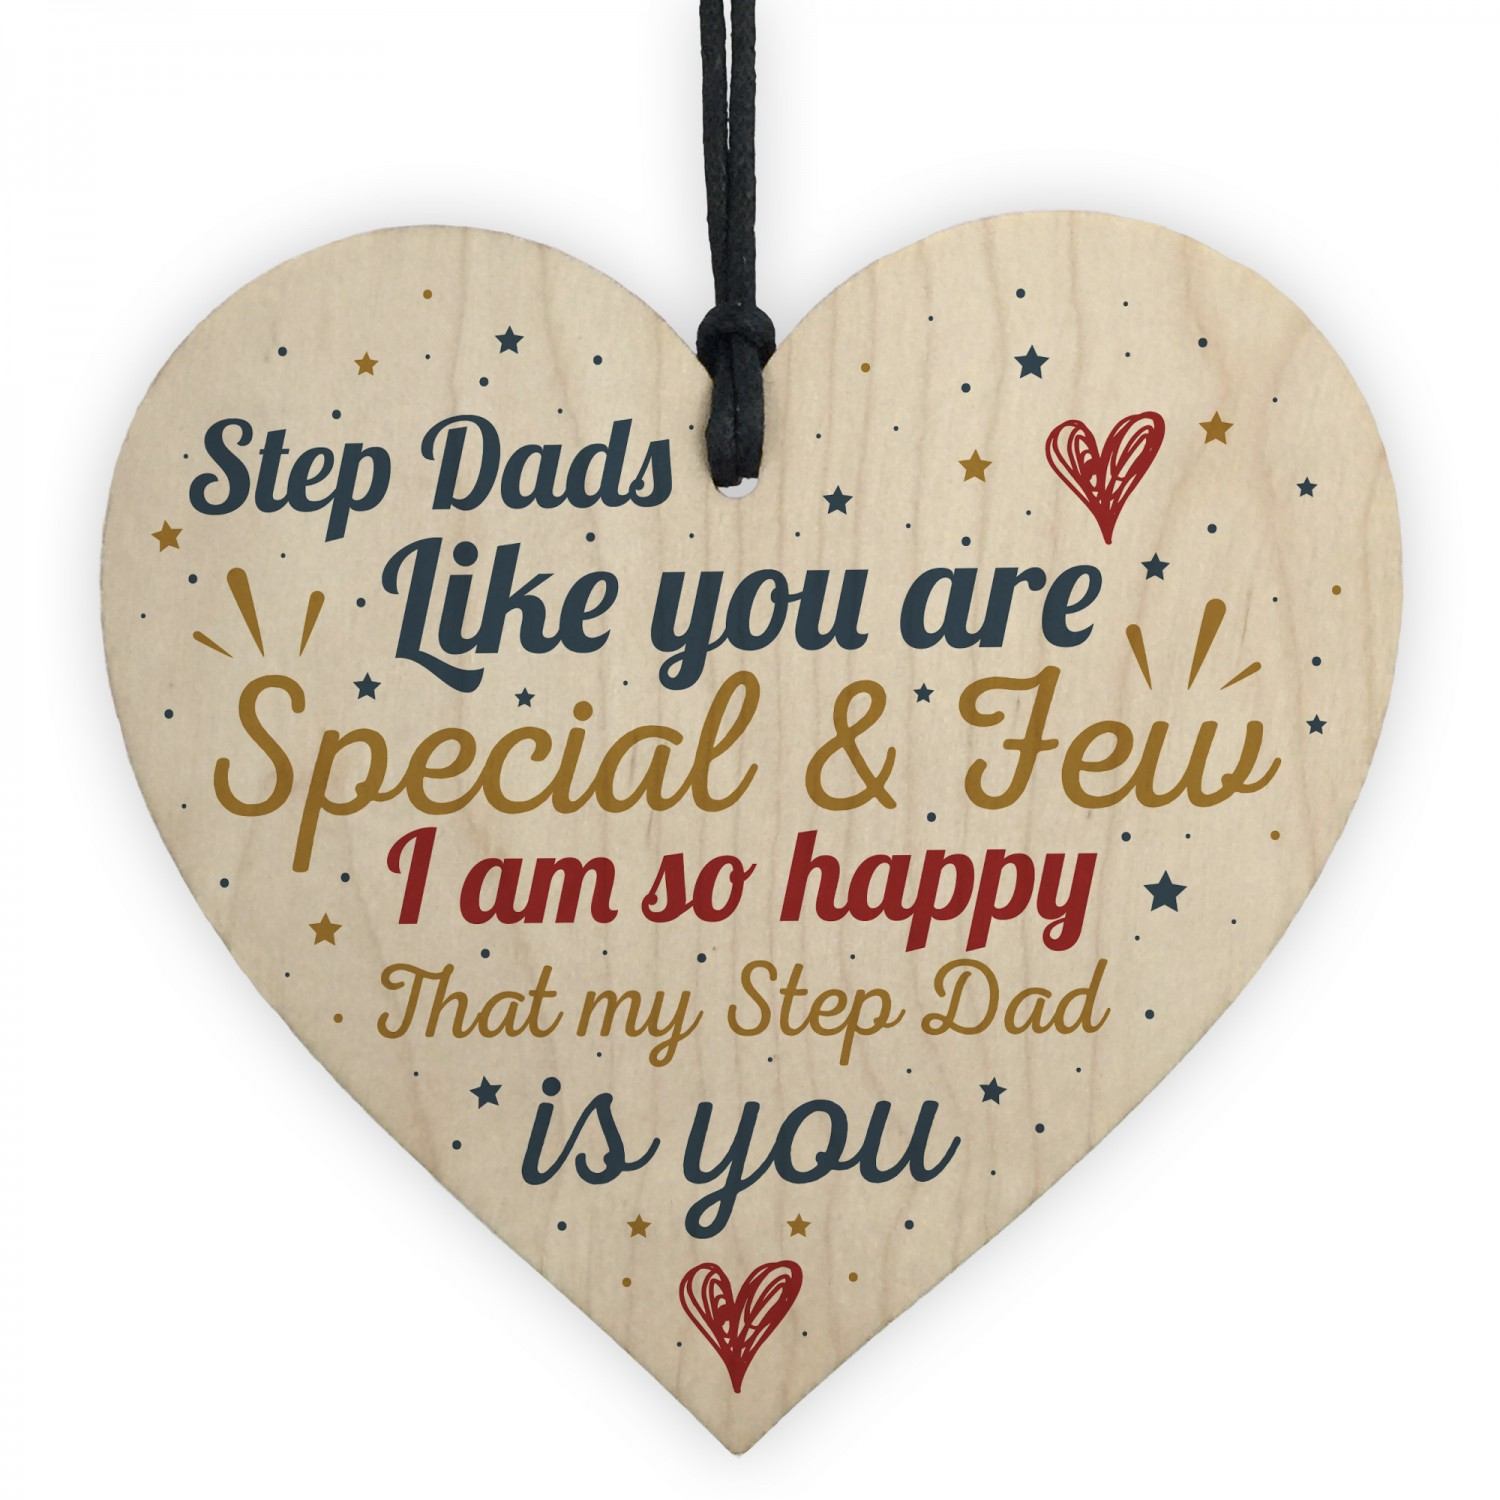 Step Dad Father Gift Christmas Birthday Wood Heart Plaque